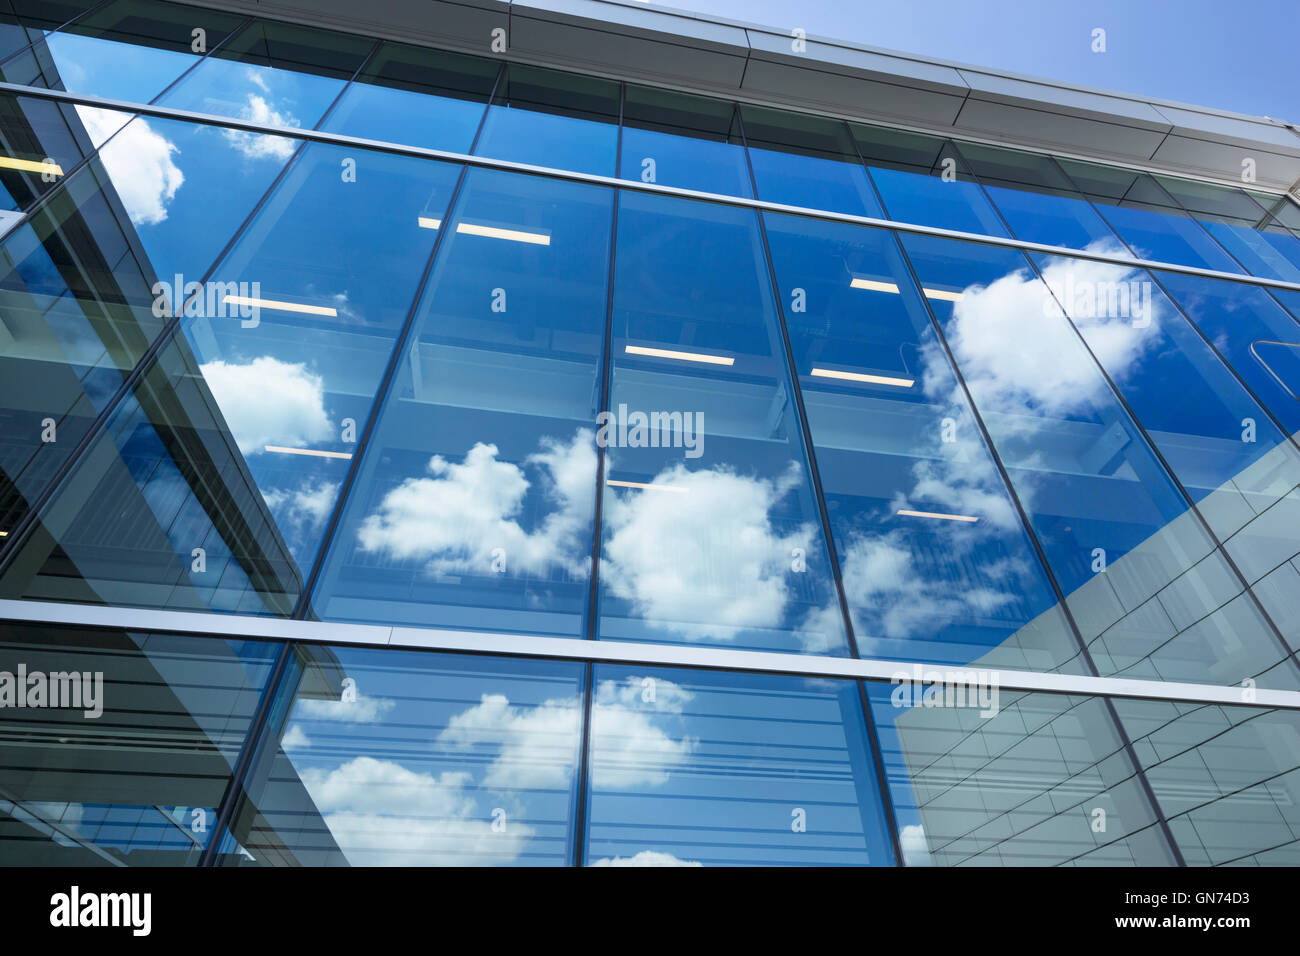 Glass office windows - Puffy White Clouds Blue Sky Reflected On Glass Office Building Windows